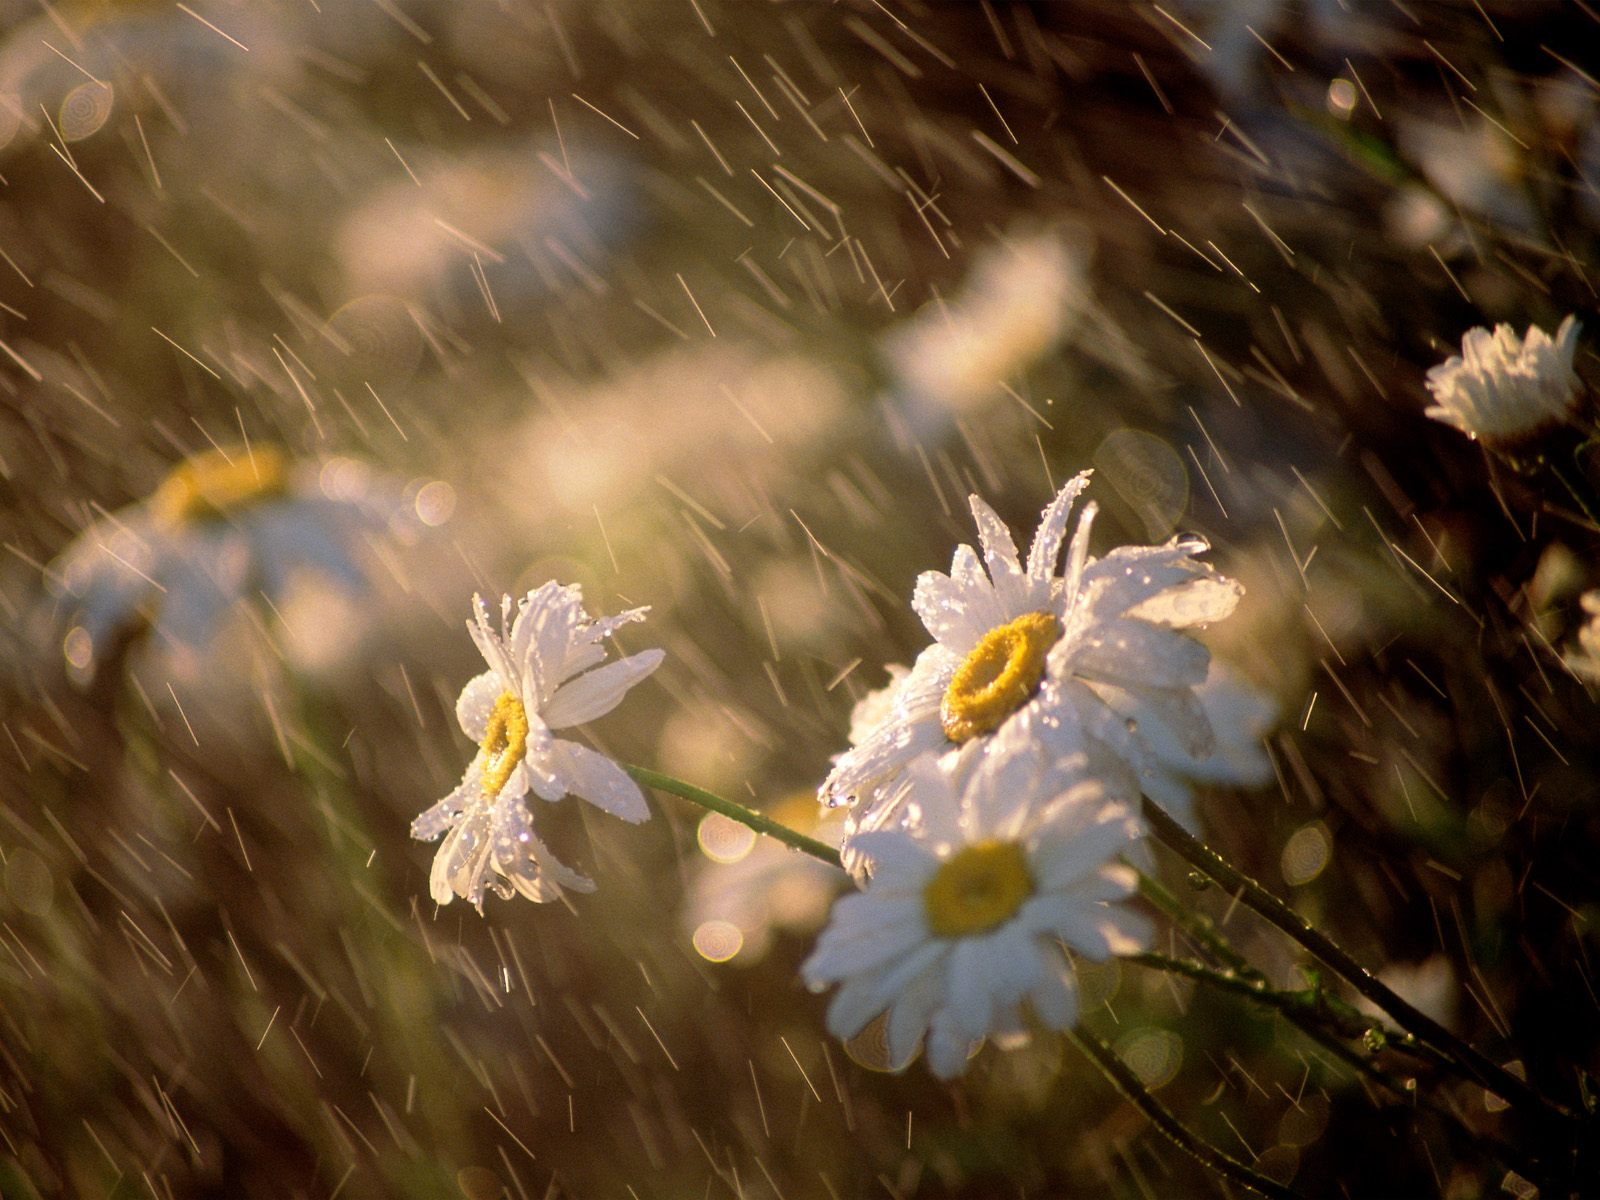 Download full size Wet Daisies Flowers wallpaper / 1600x1200